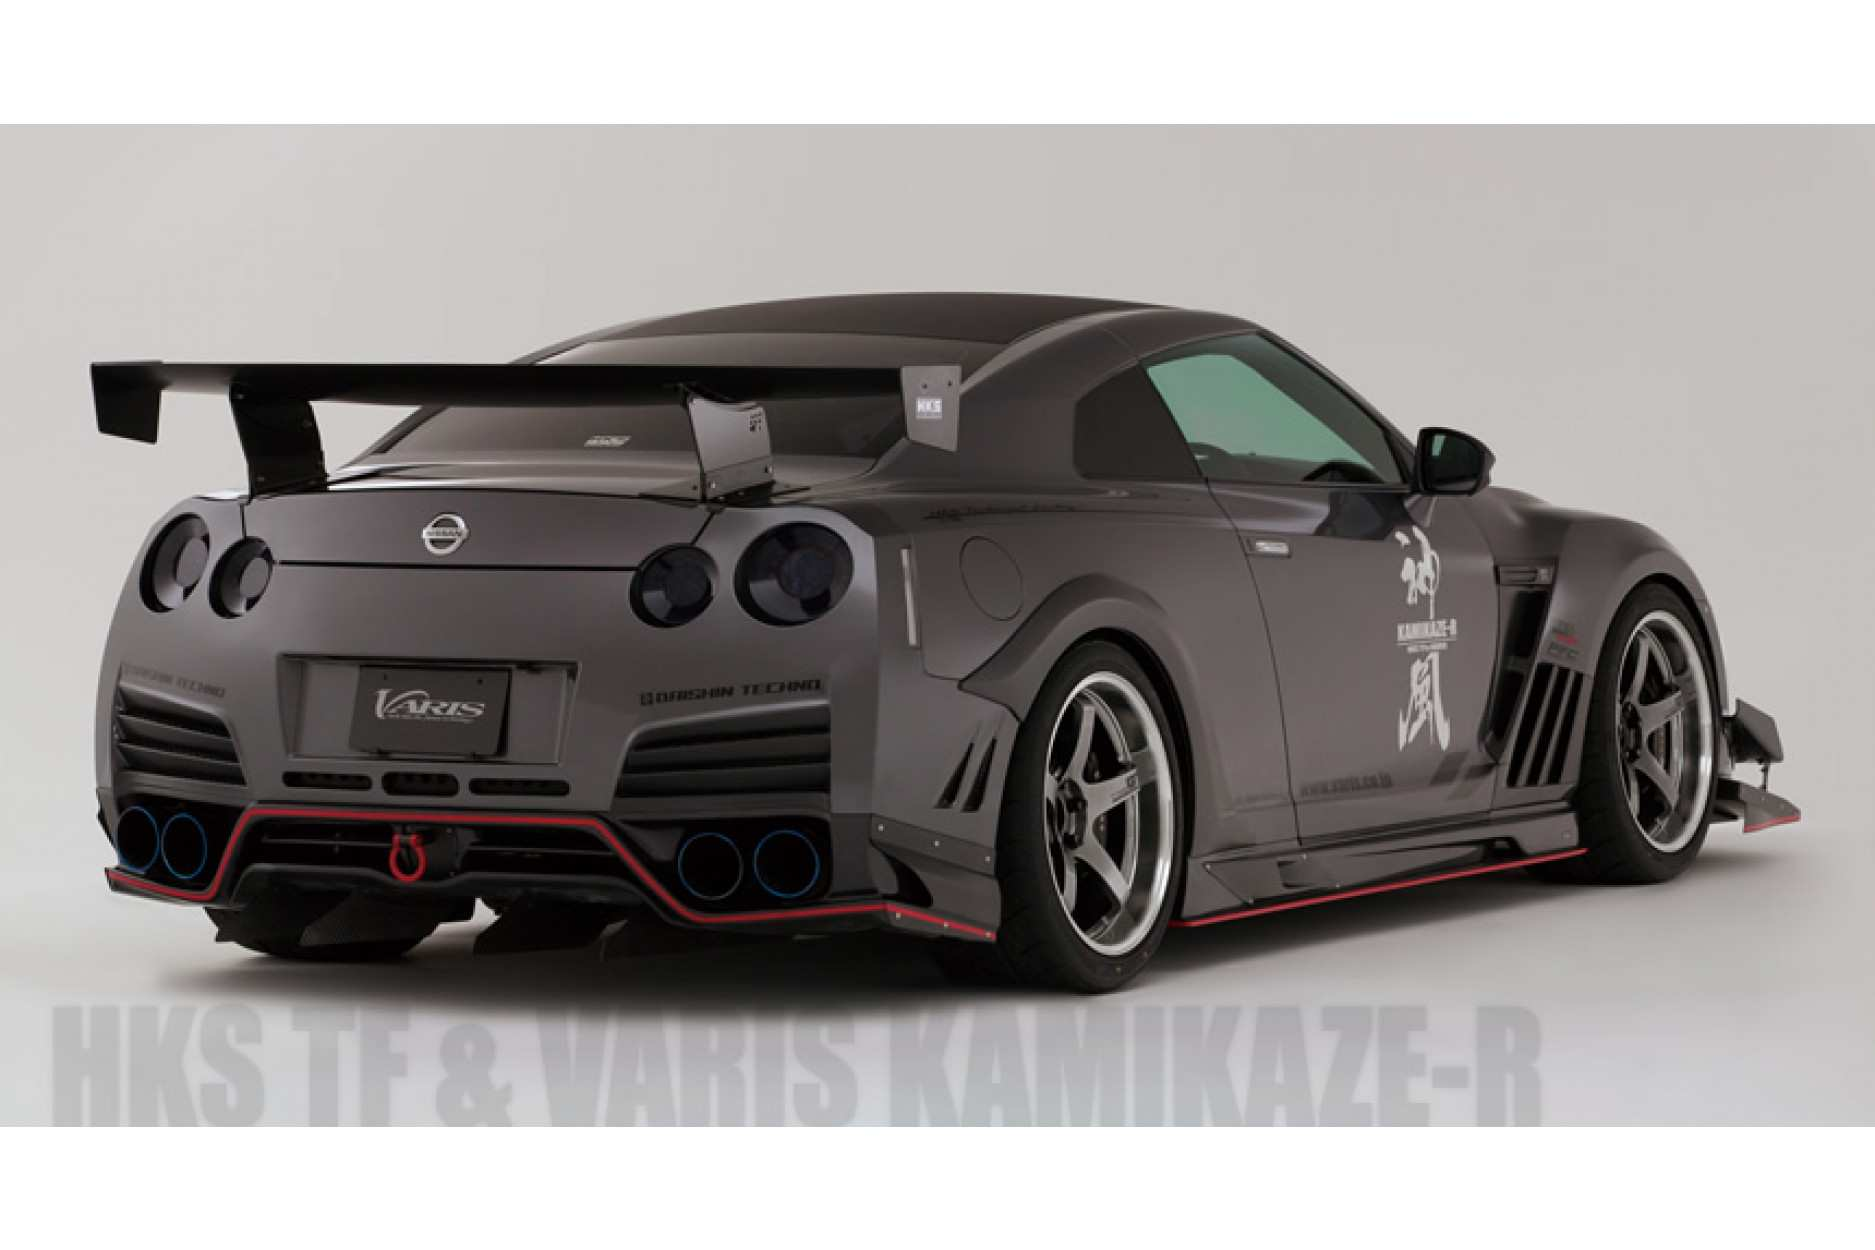 52 Concept of Nissan Gtr Picture Research New by Nissan Gtr Picture